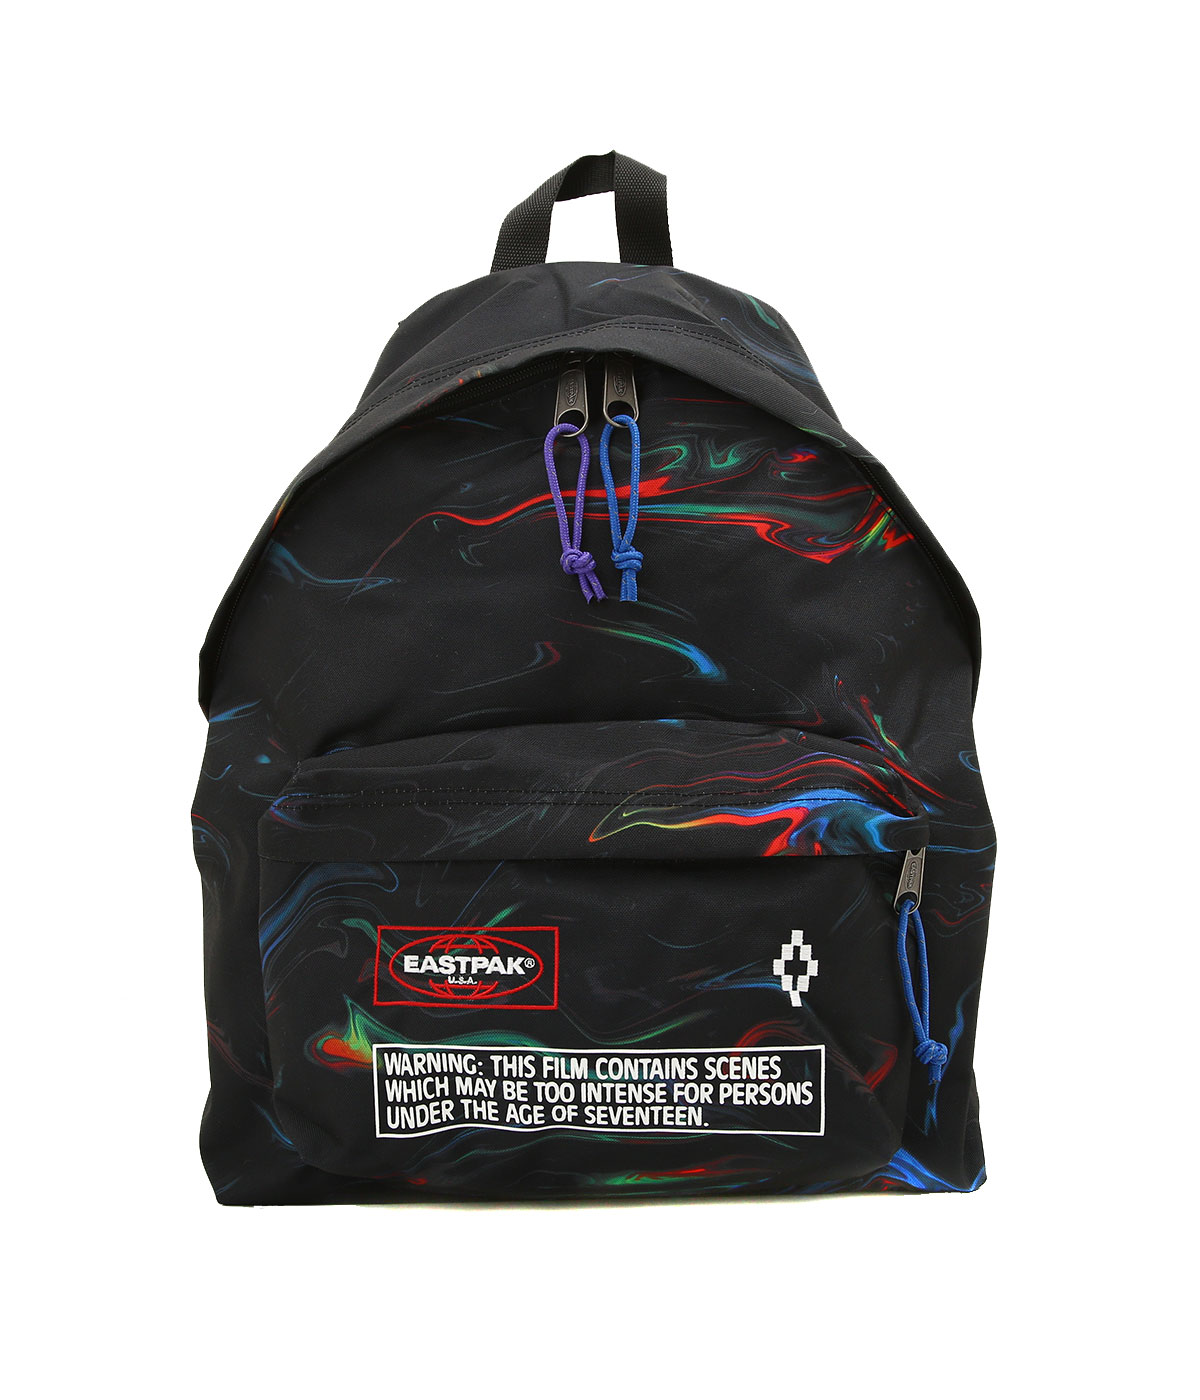 ALL OVER EASTPACK BACKPACK